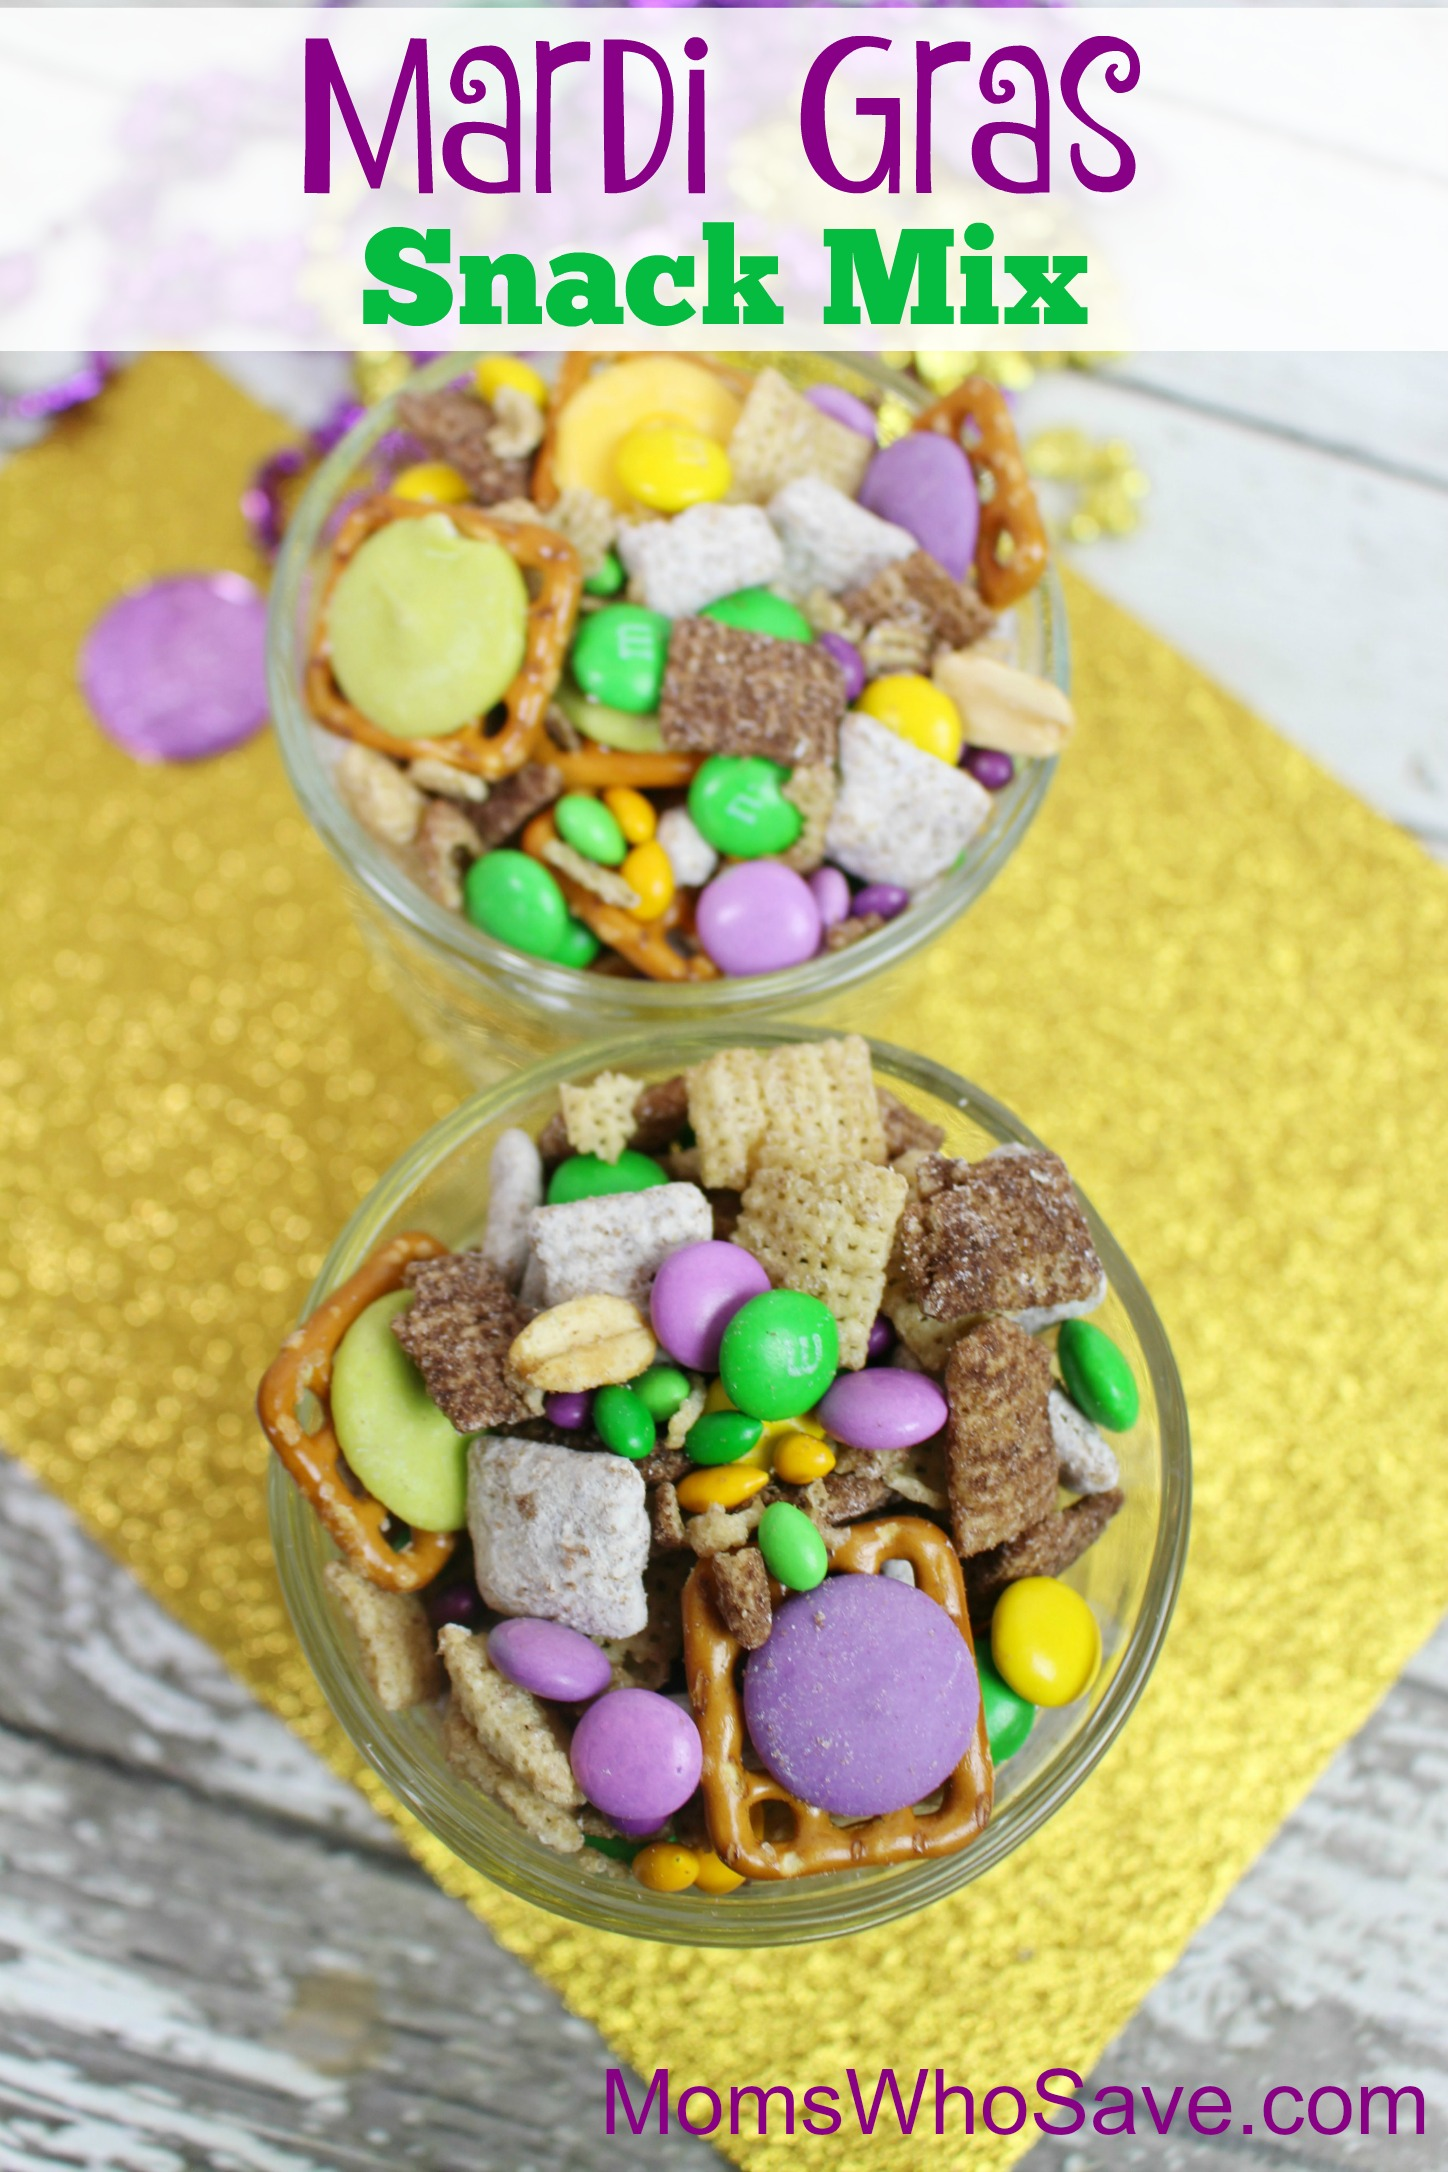 Mardi Gras Snack recipes